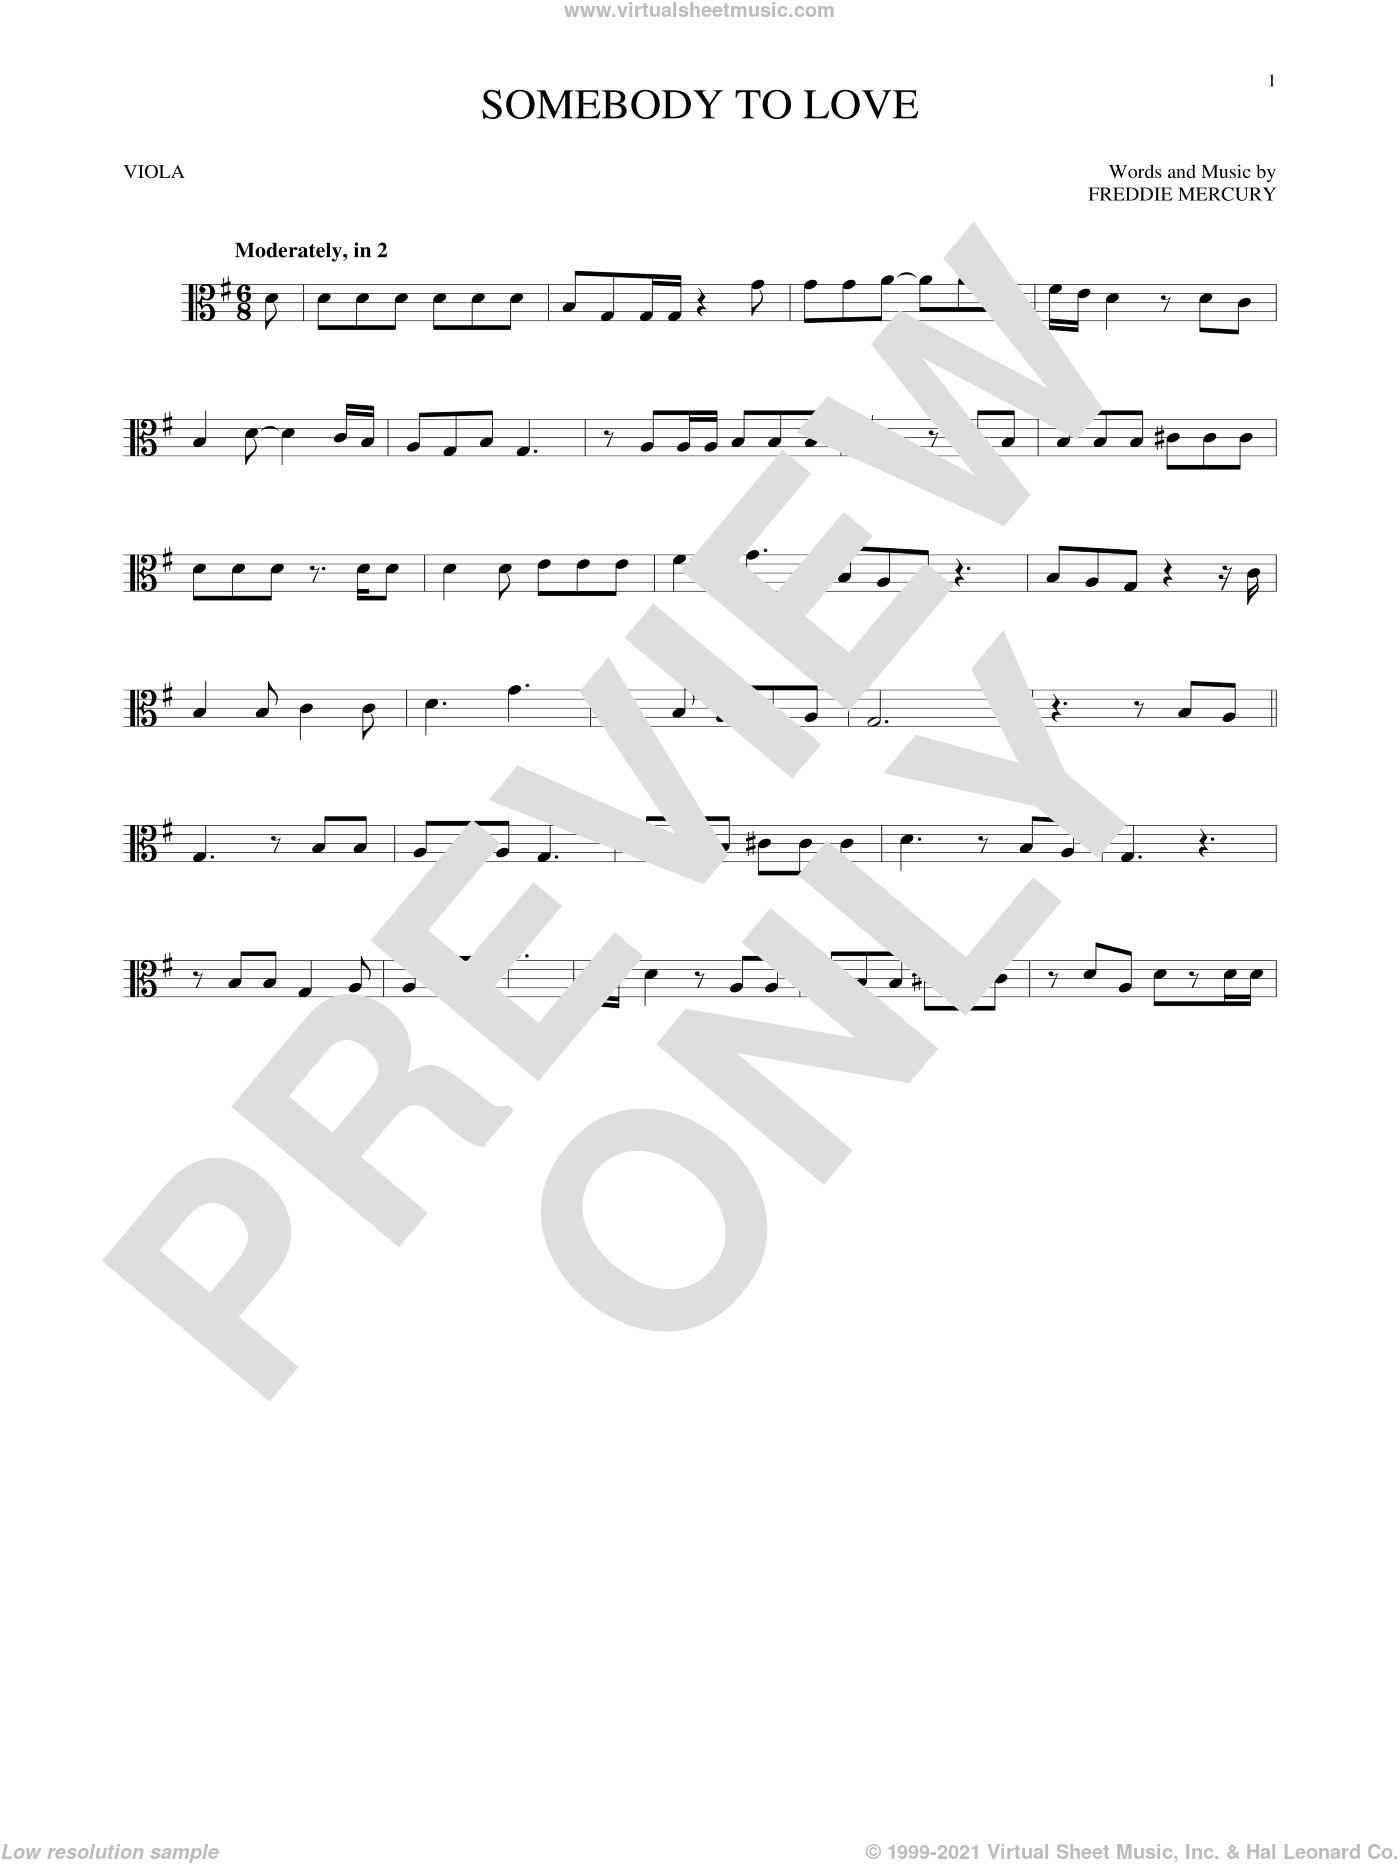 Somebody To Love sheet music for viola solo by Queen and Freddie Mercury, intermediate skill level